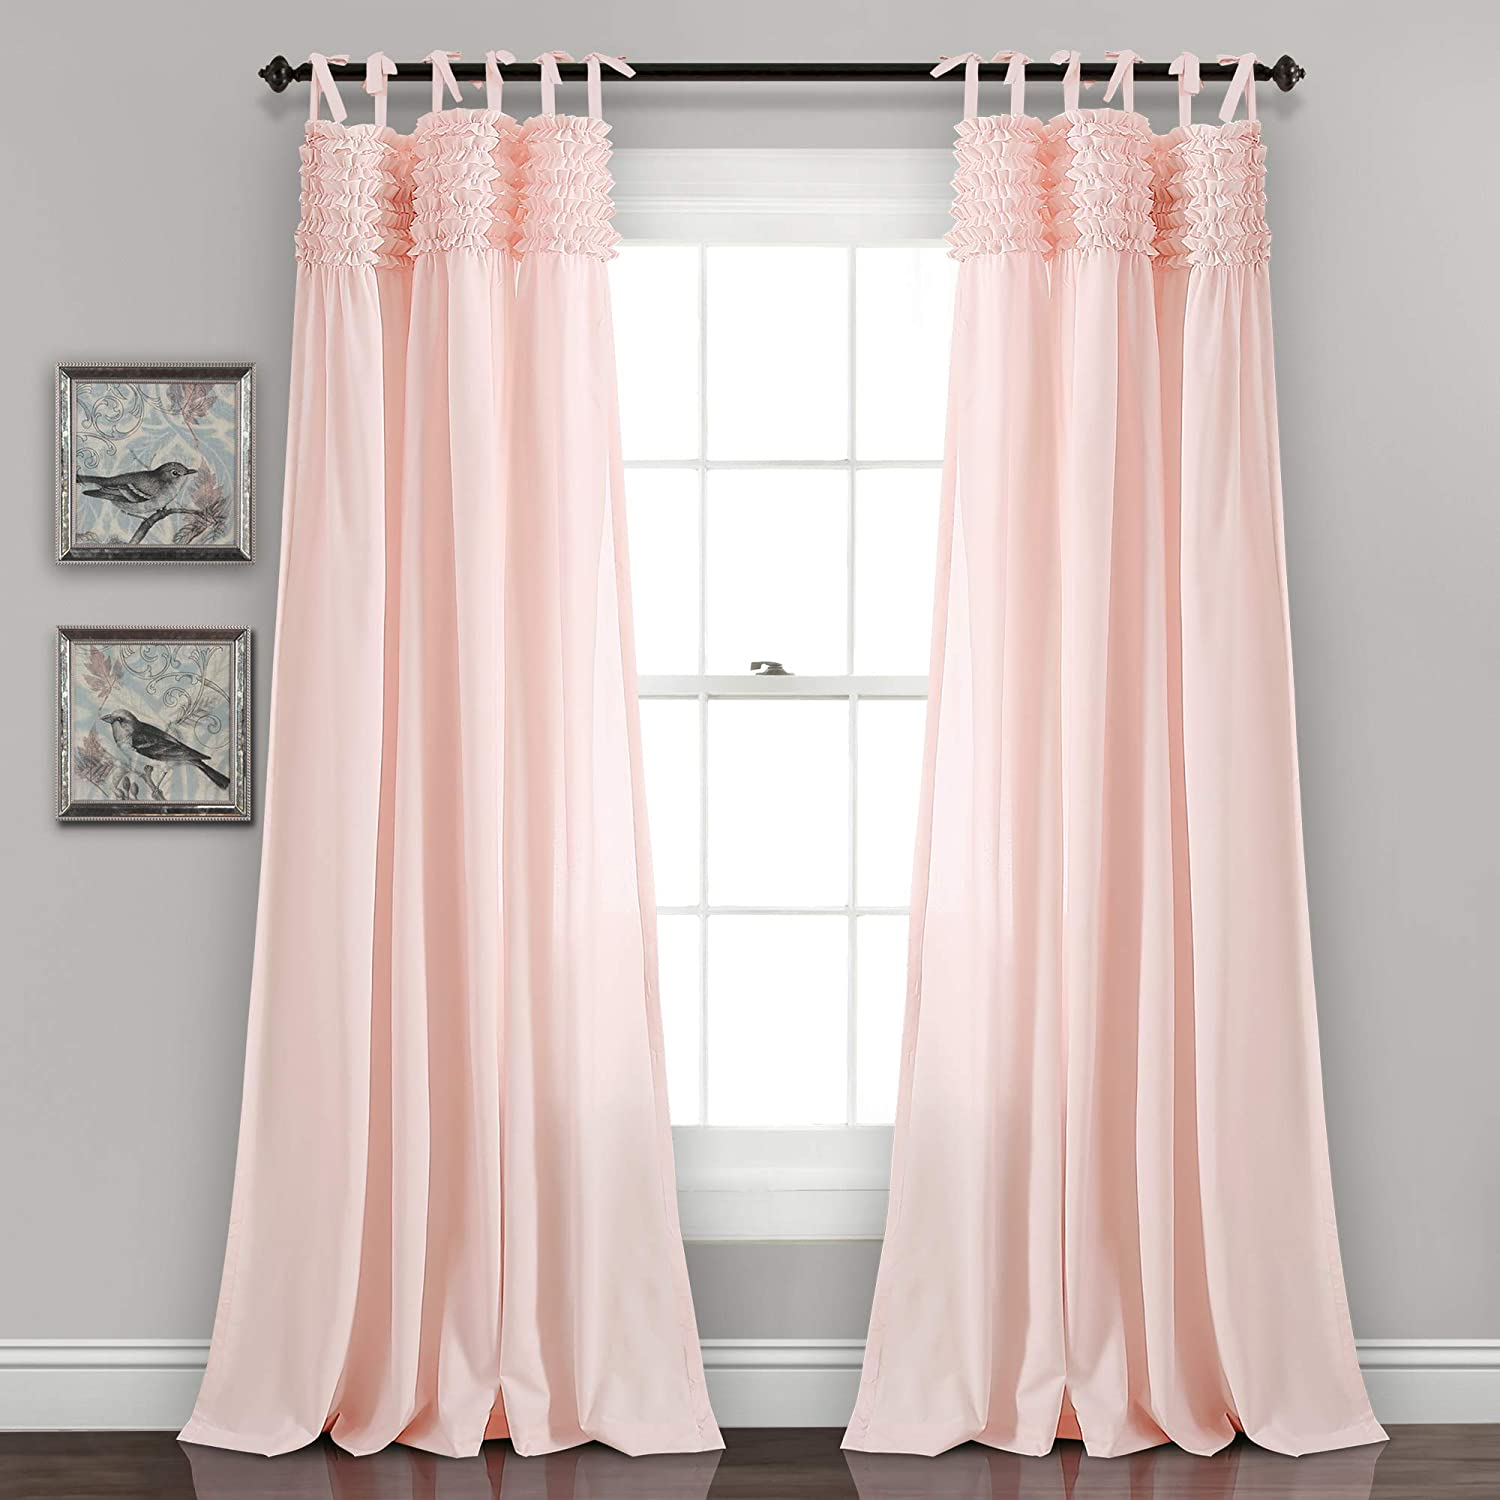 "Lush Decor Lydia Curtains Ruffle Window Panel Set for Living, Dining, Bedroom (Pair), 84"" x 40"", Blush"